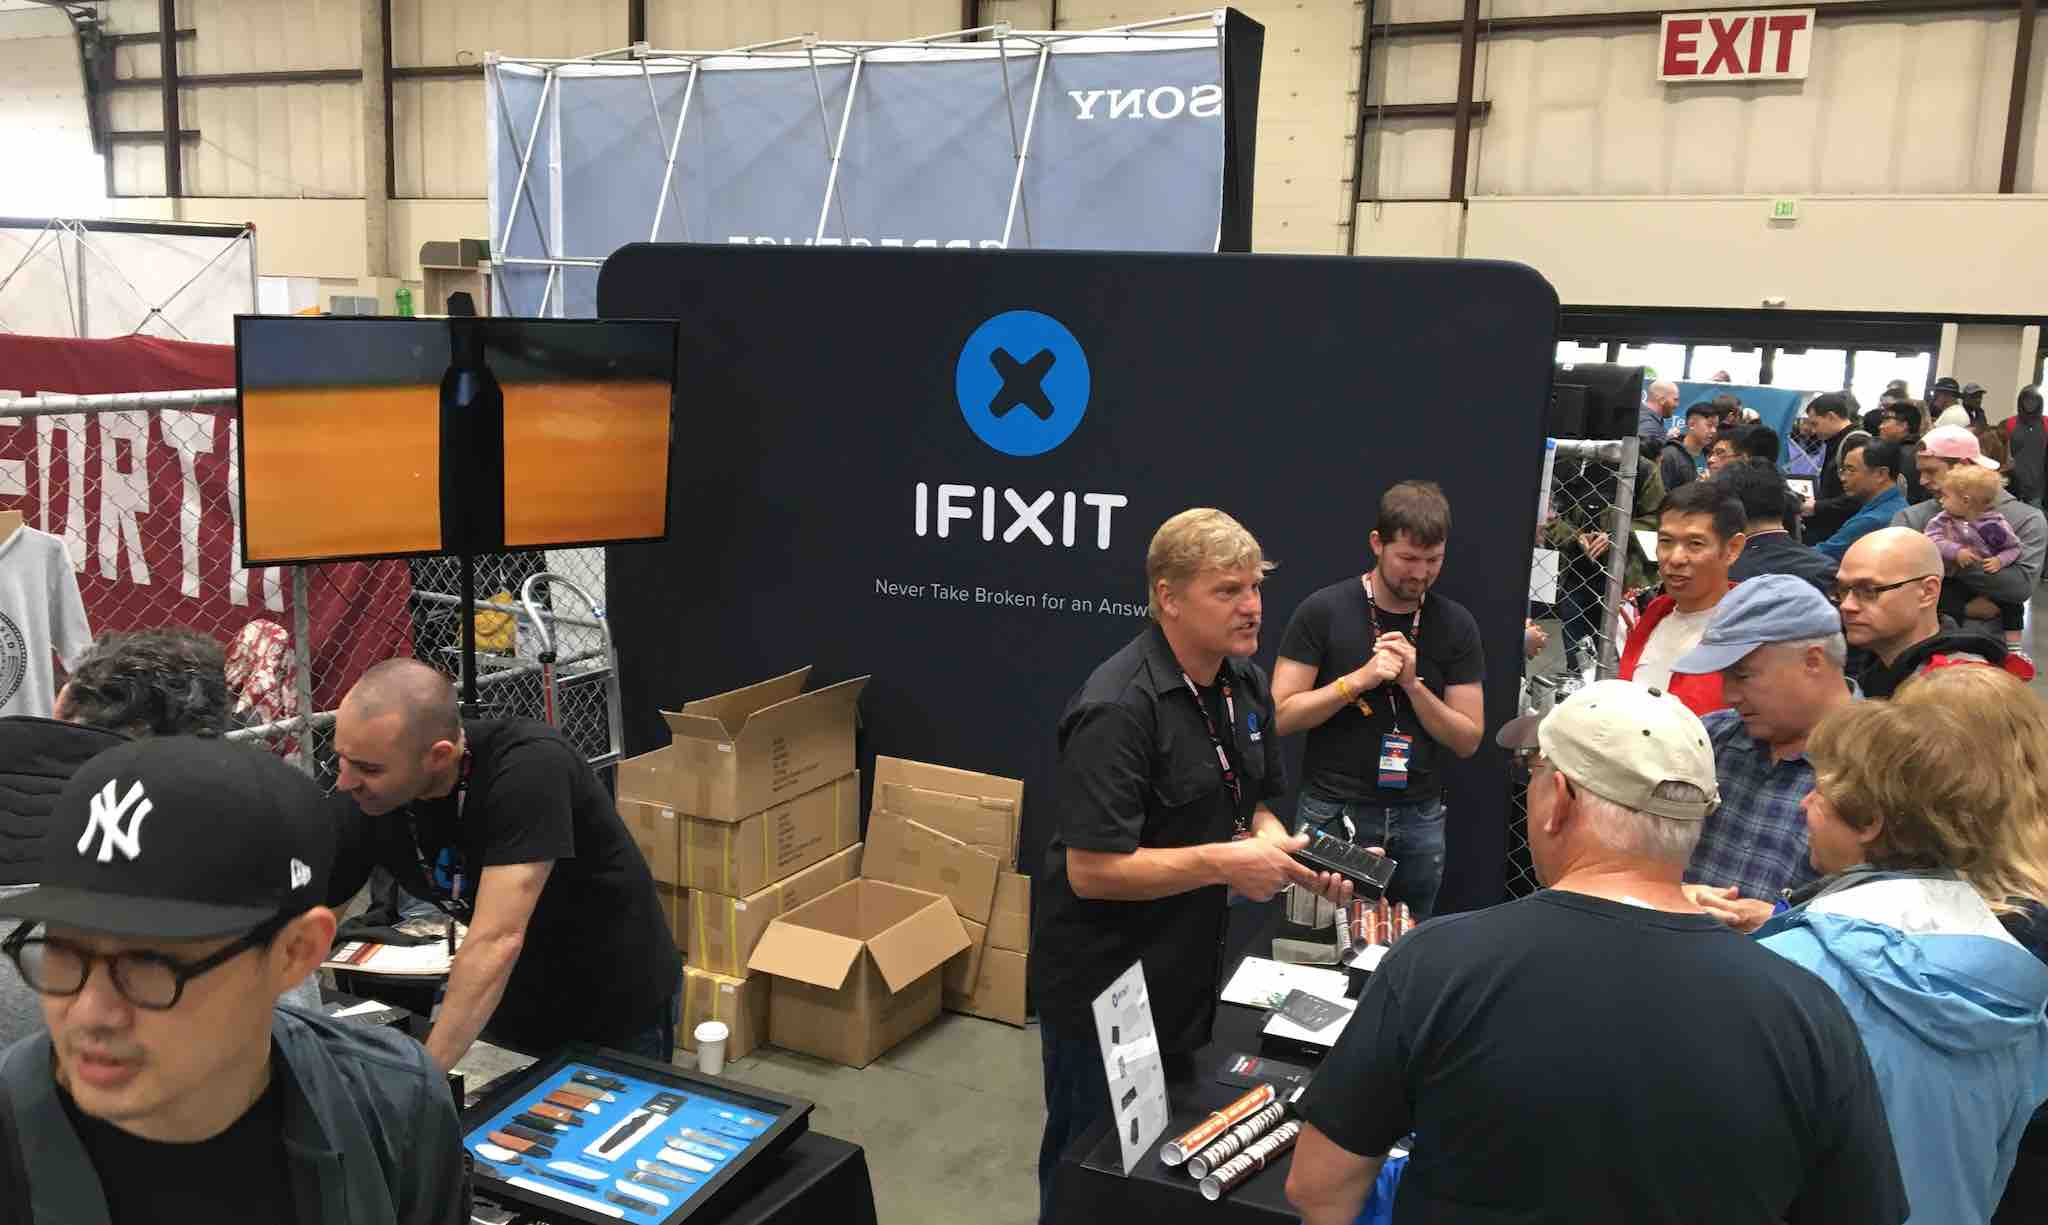 iFixit's booth at Bay Area Maker Faire 2019.